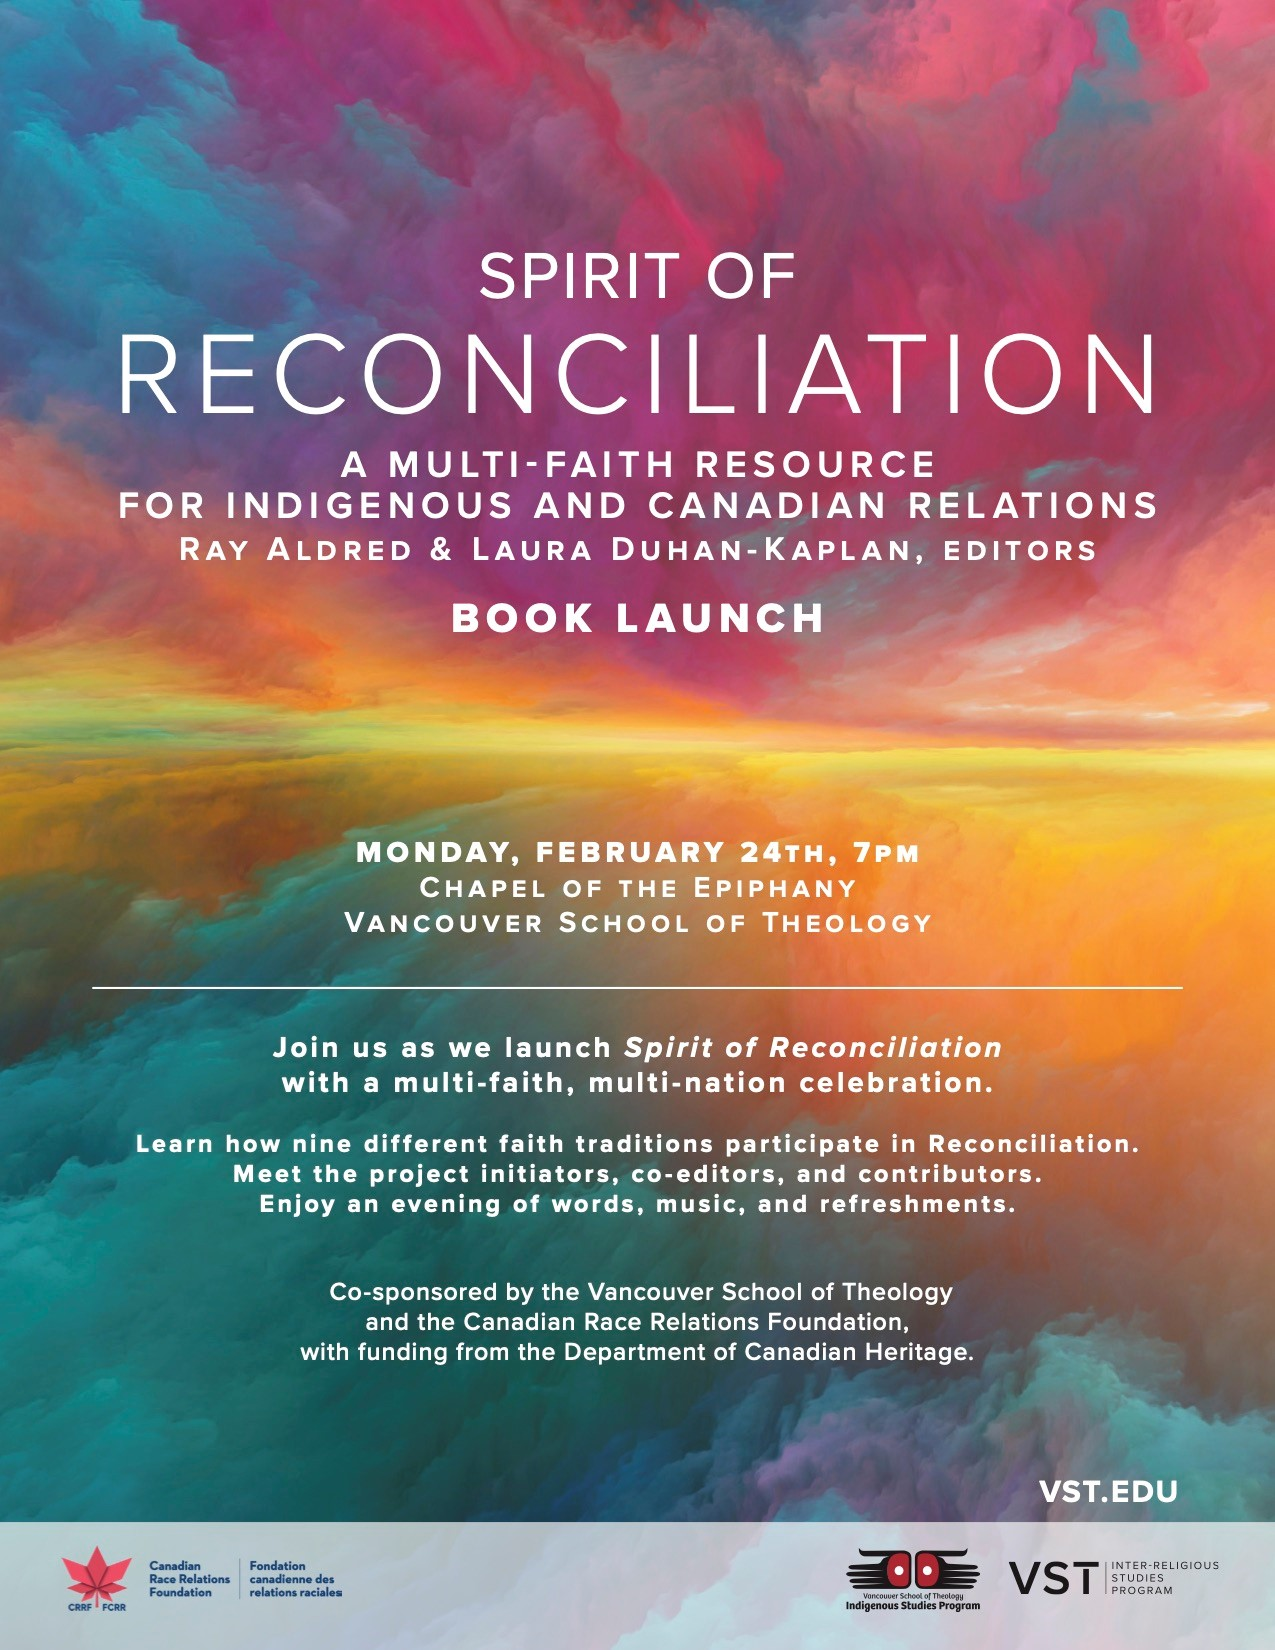 Spirit of Reconciliation launch flyer